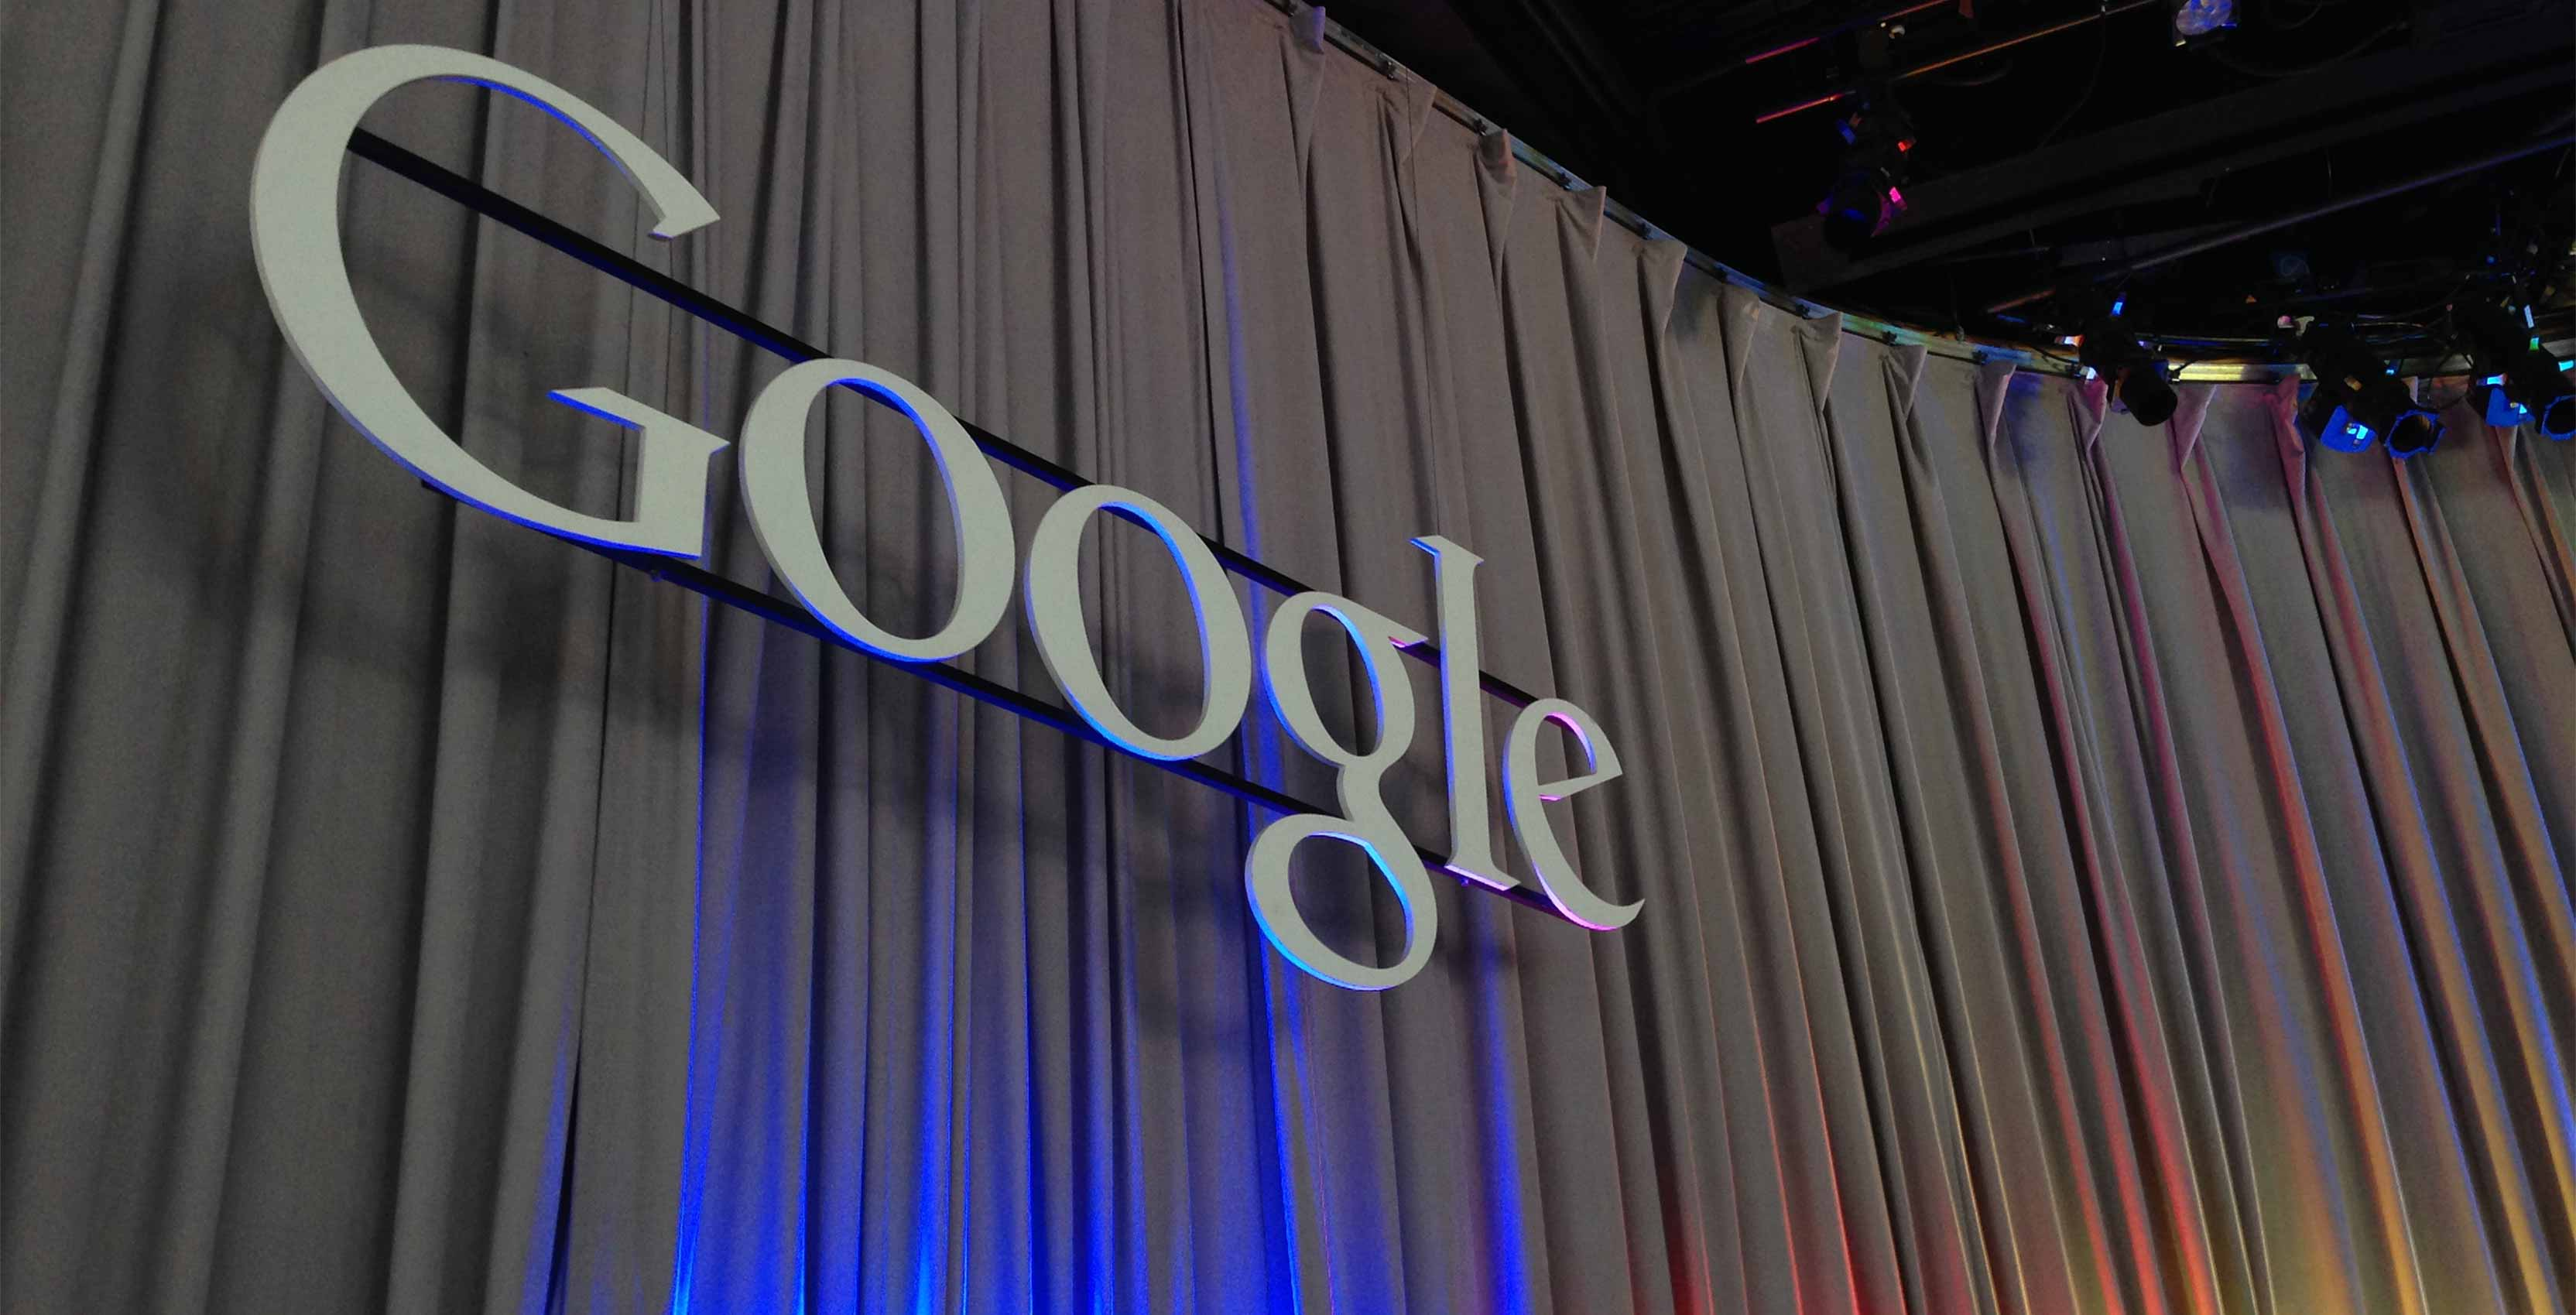 Google's logo at a press conference about google ai